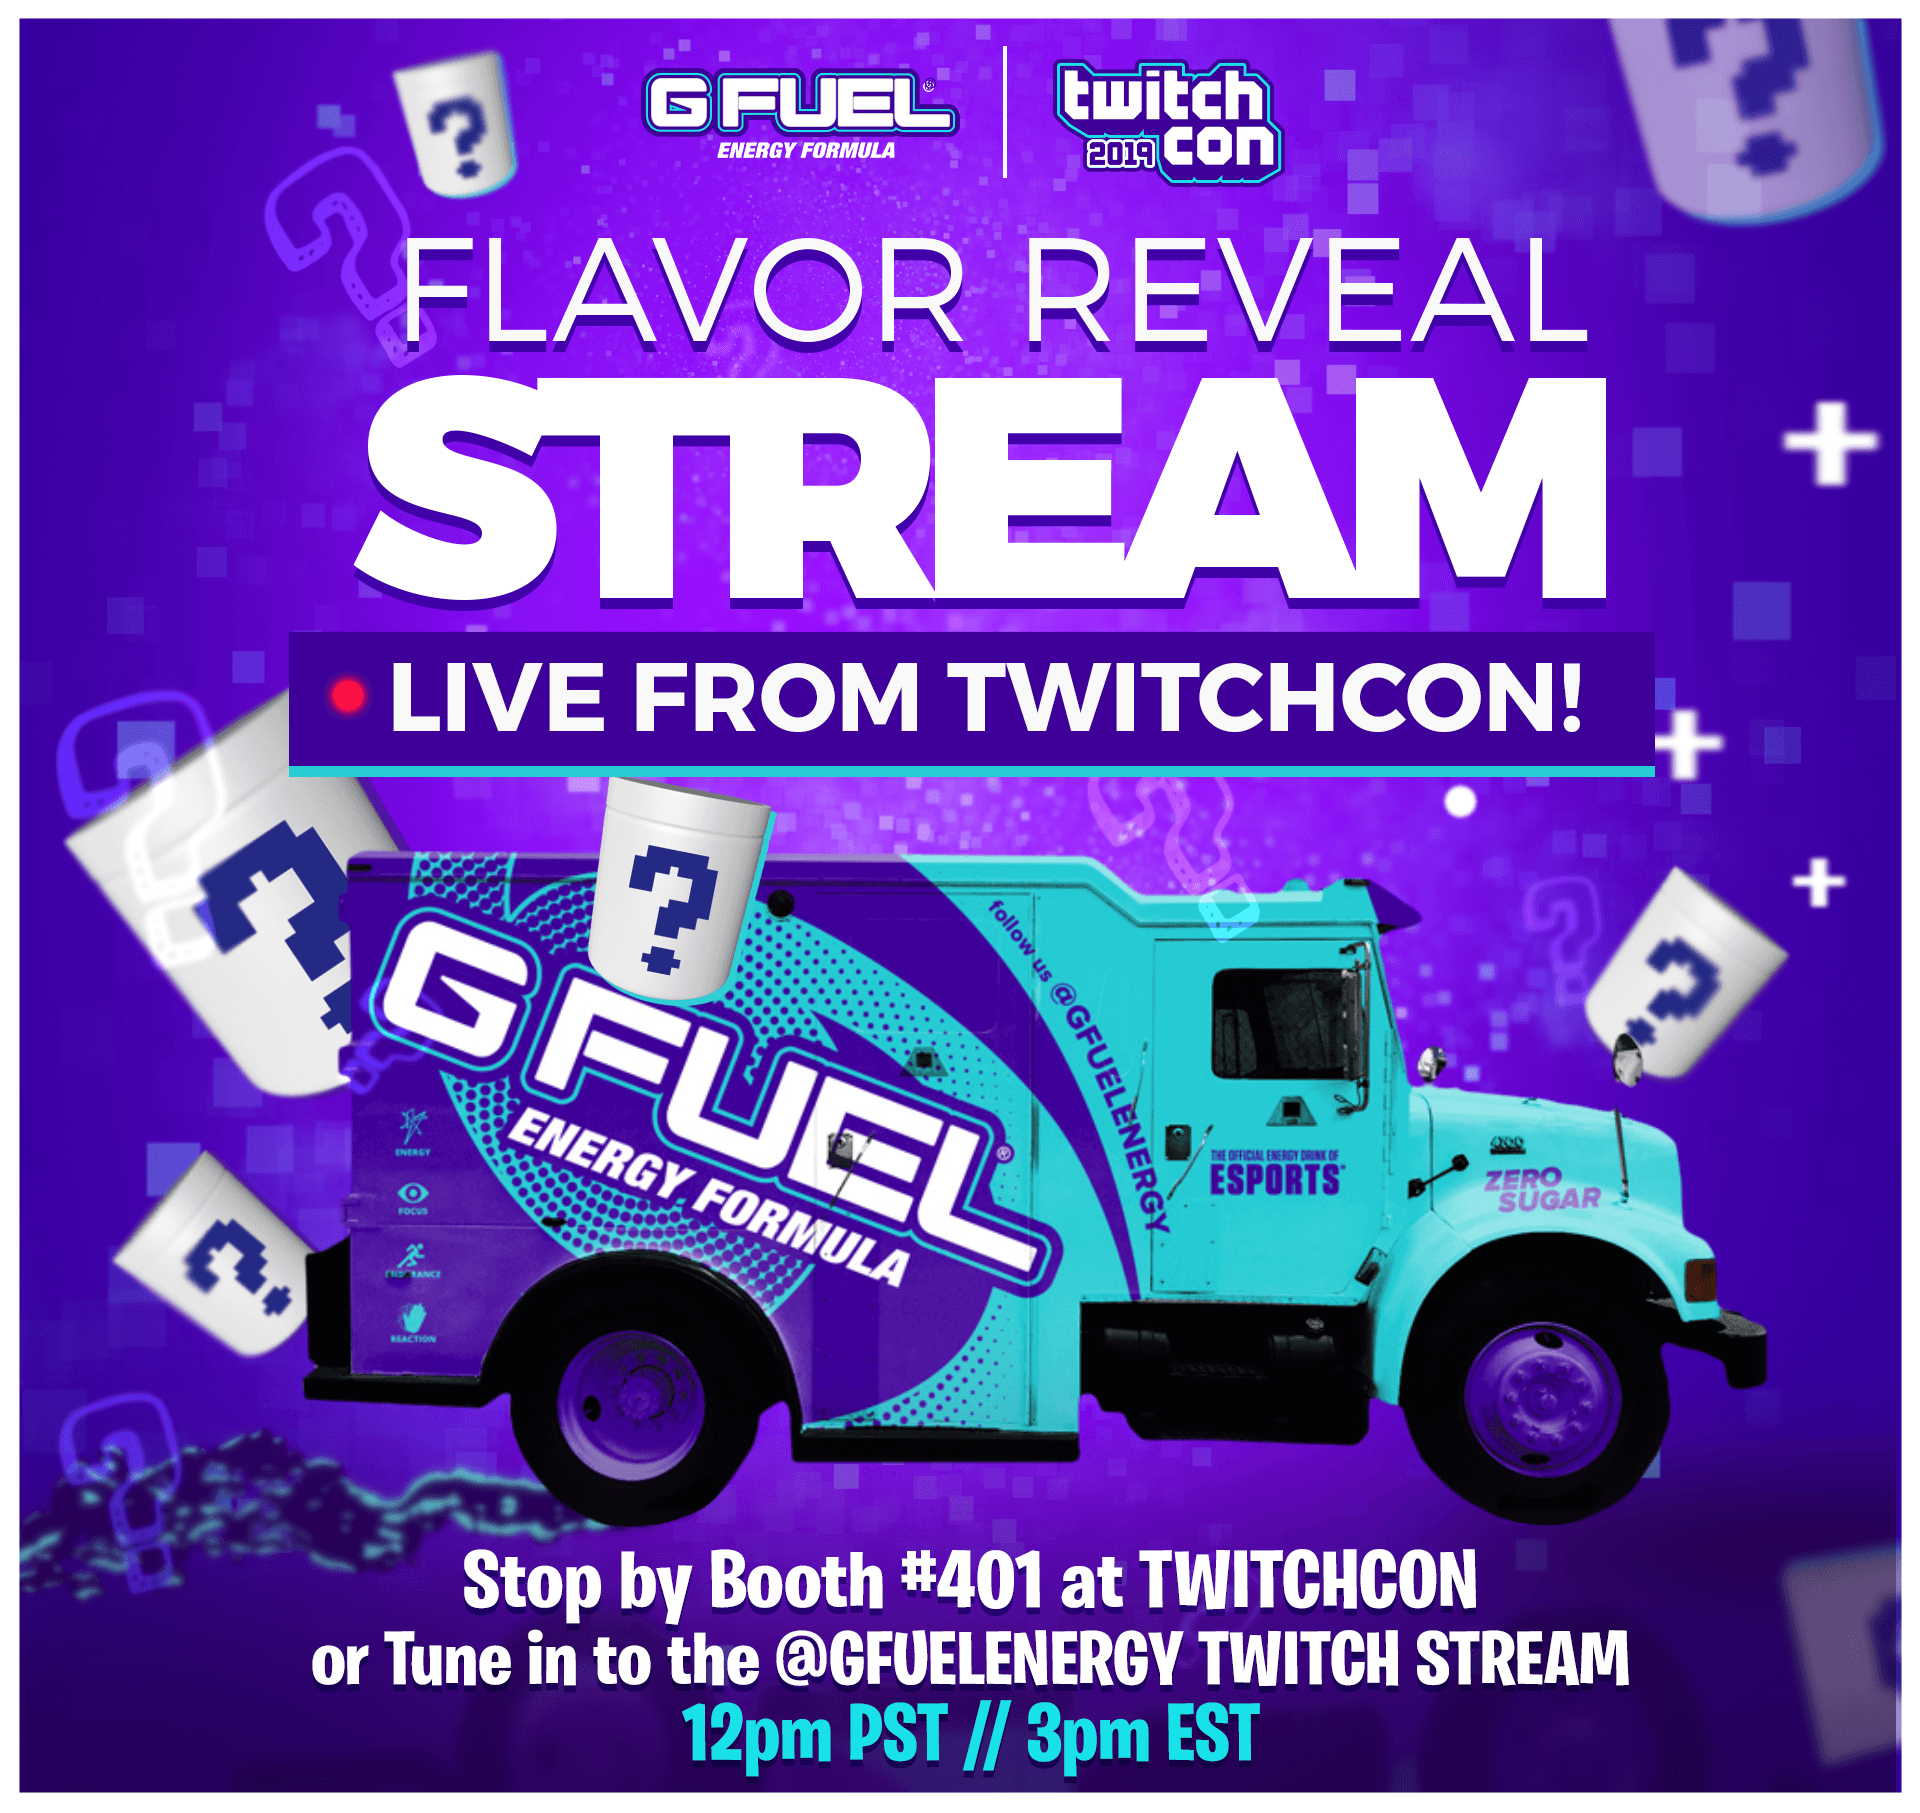 G FUEL will reveal its Twitch-inspired flavor at TwitchCon San Diego on September 27, 2019.